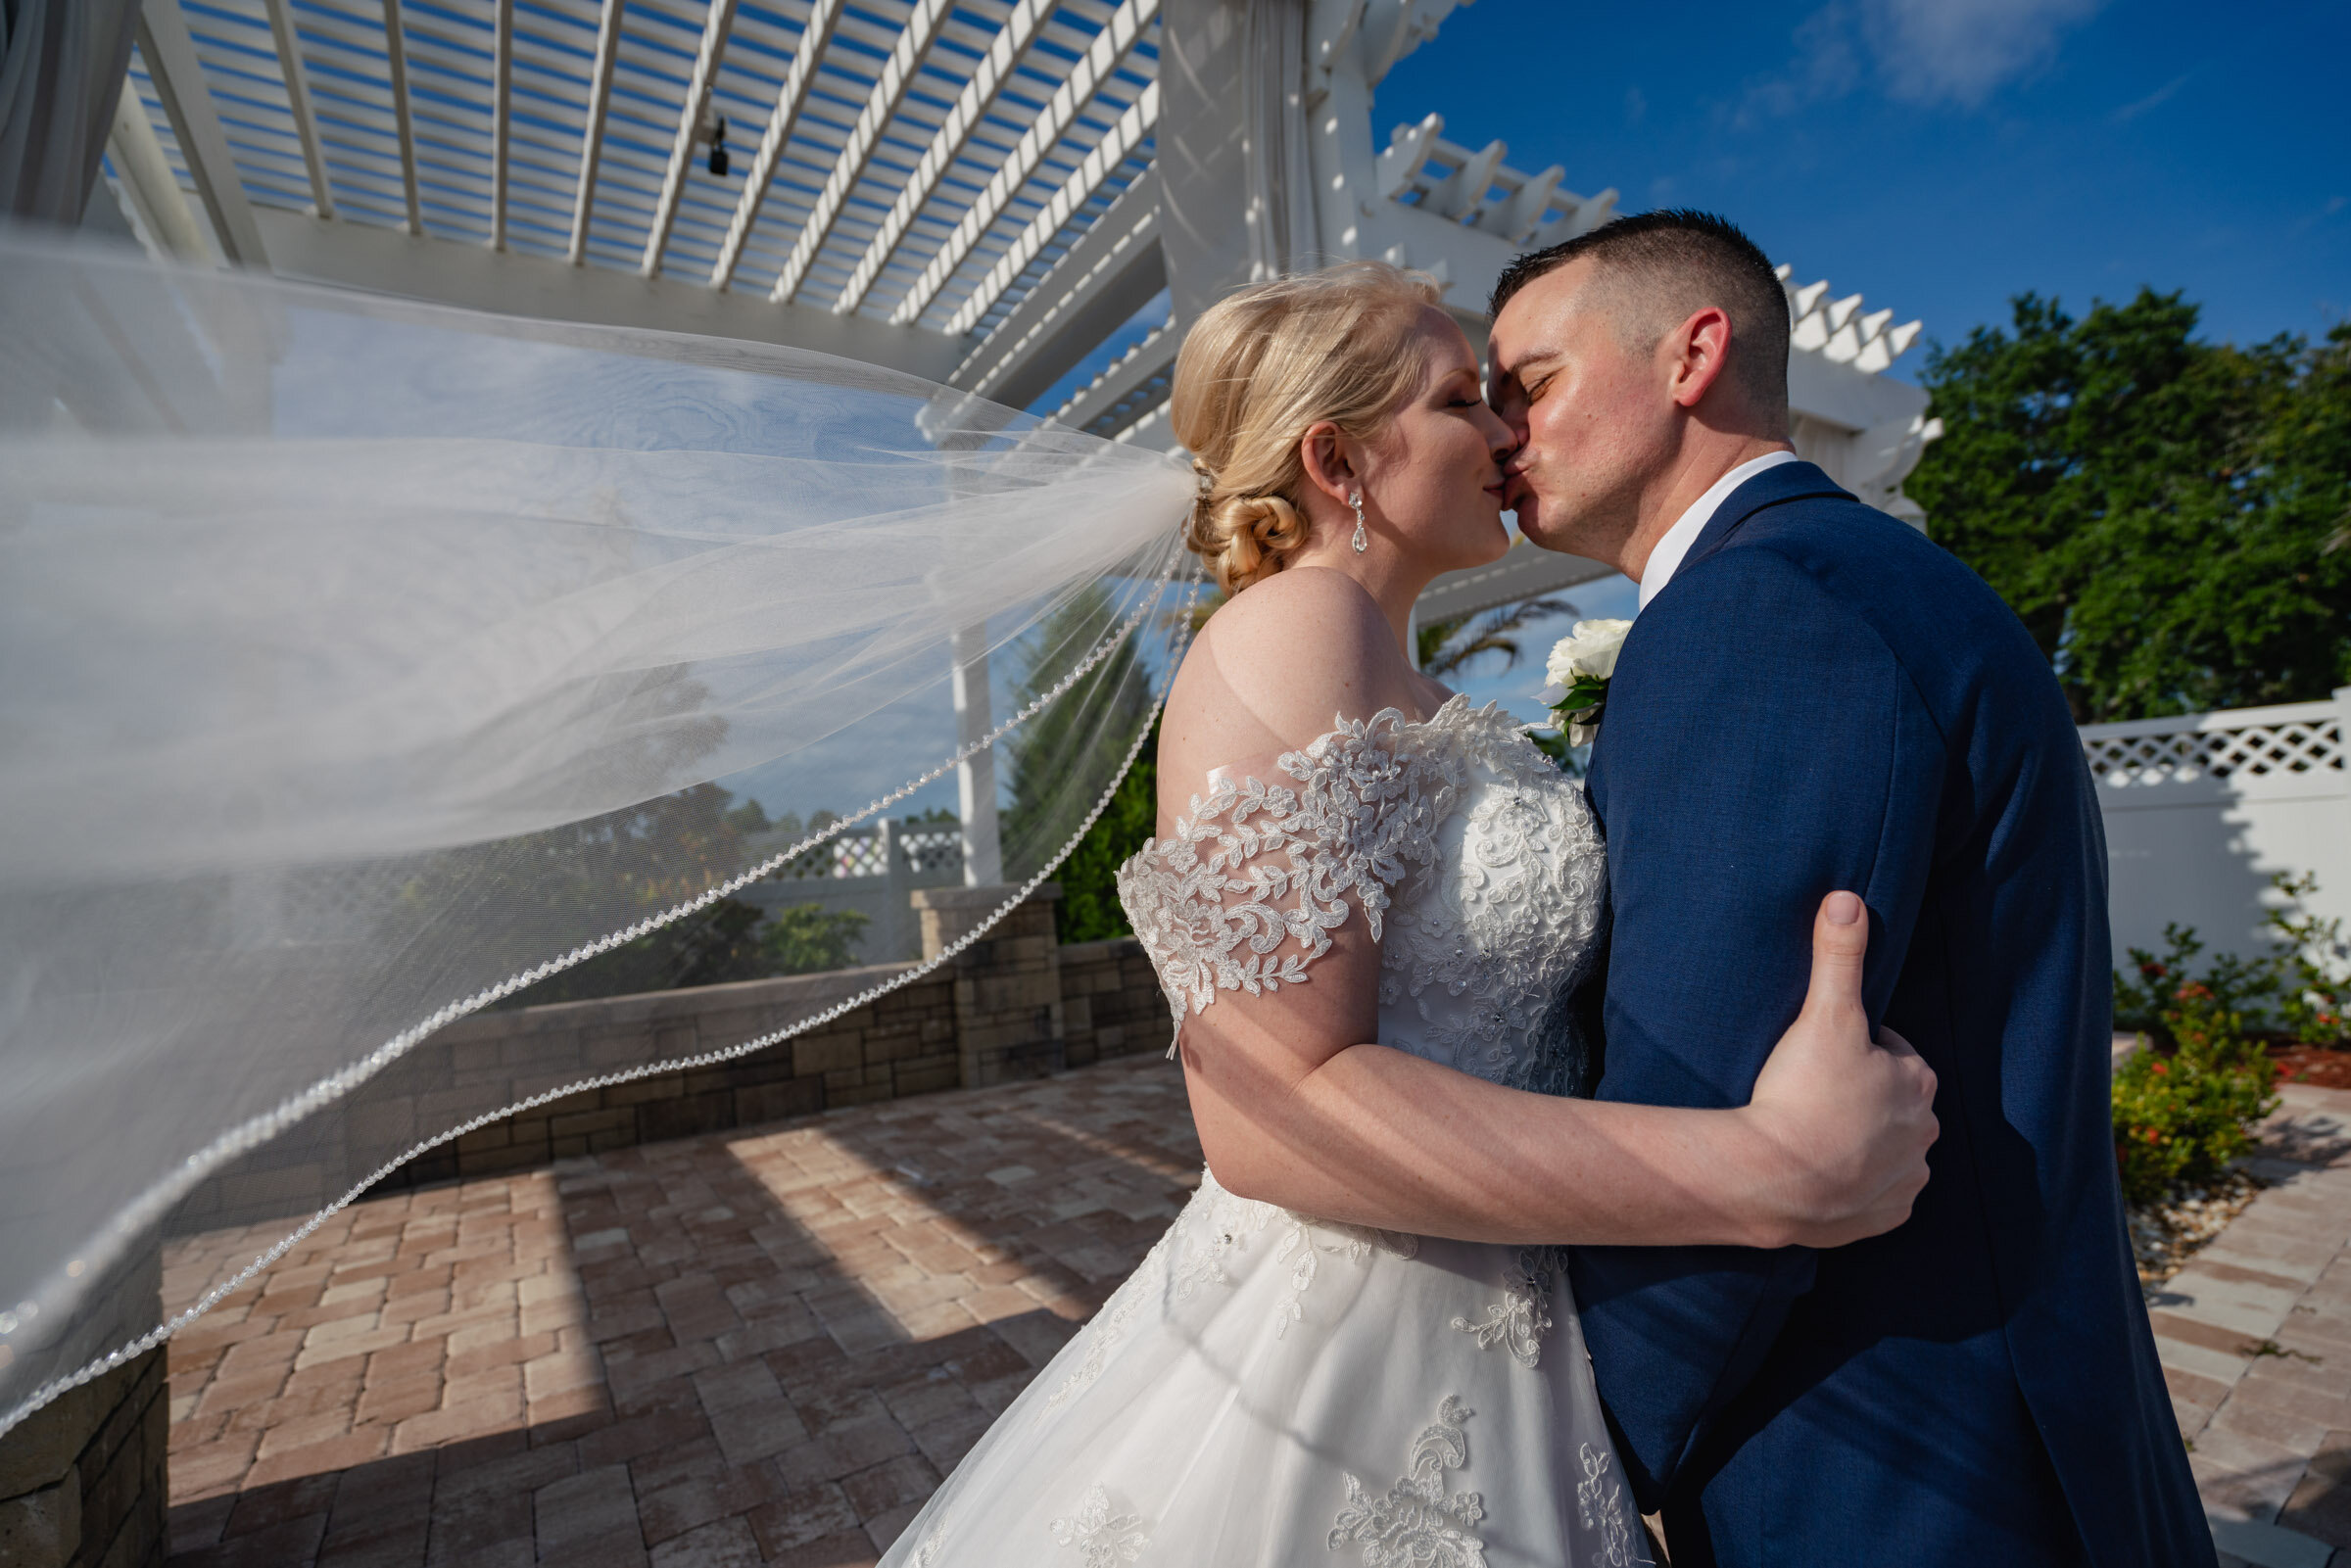 Any size bridal veil can make for a great portrait